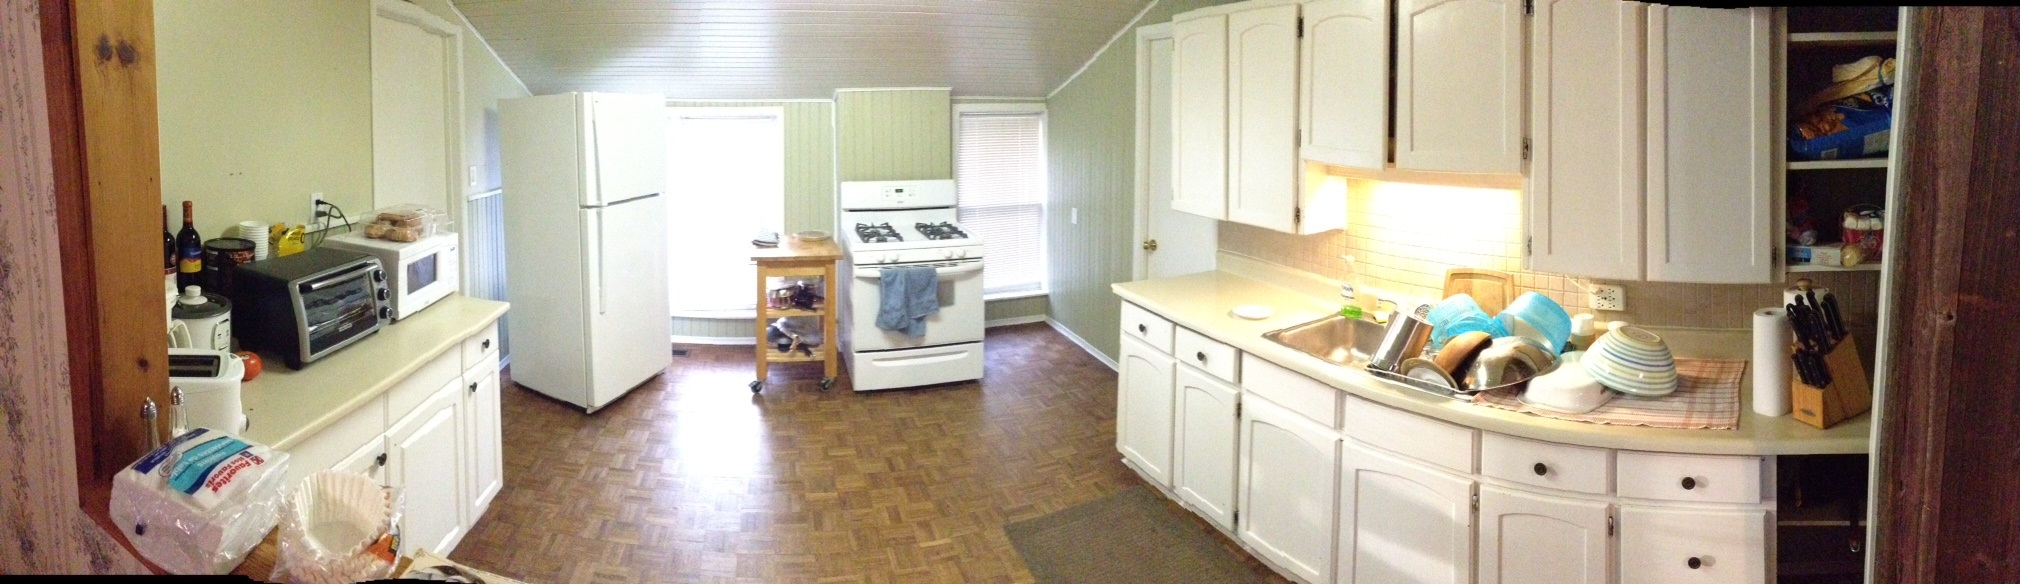 Loft kitchen.jpg